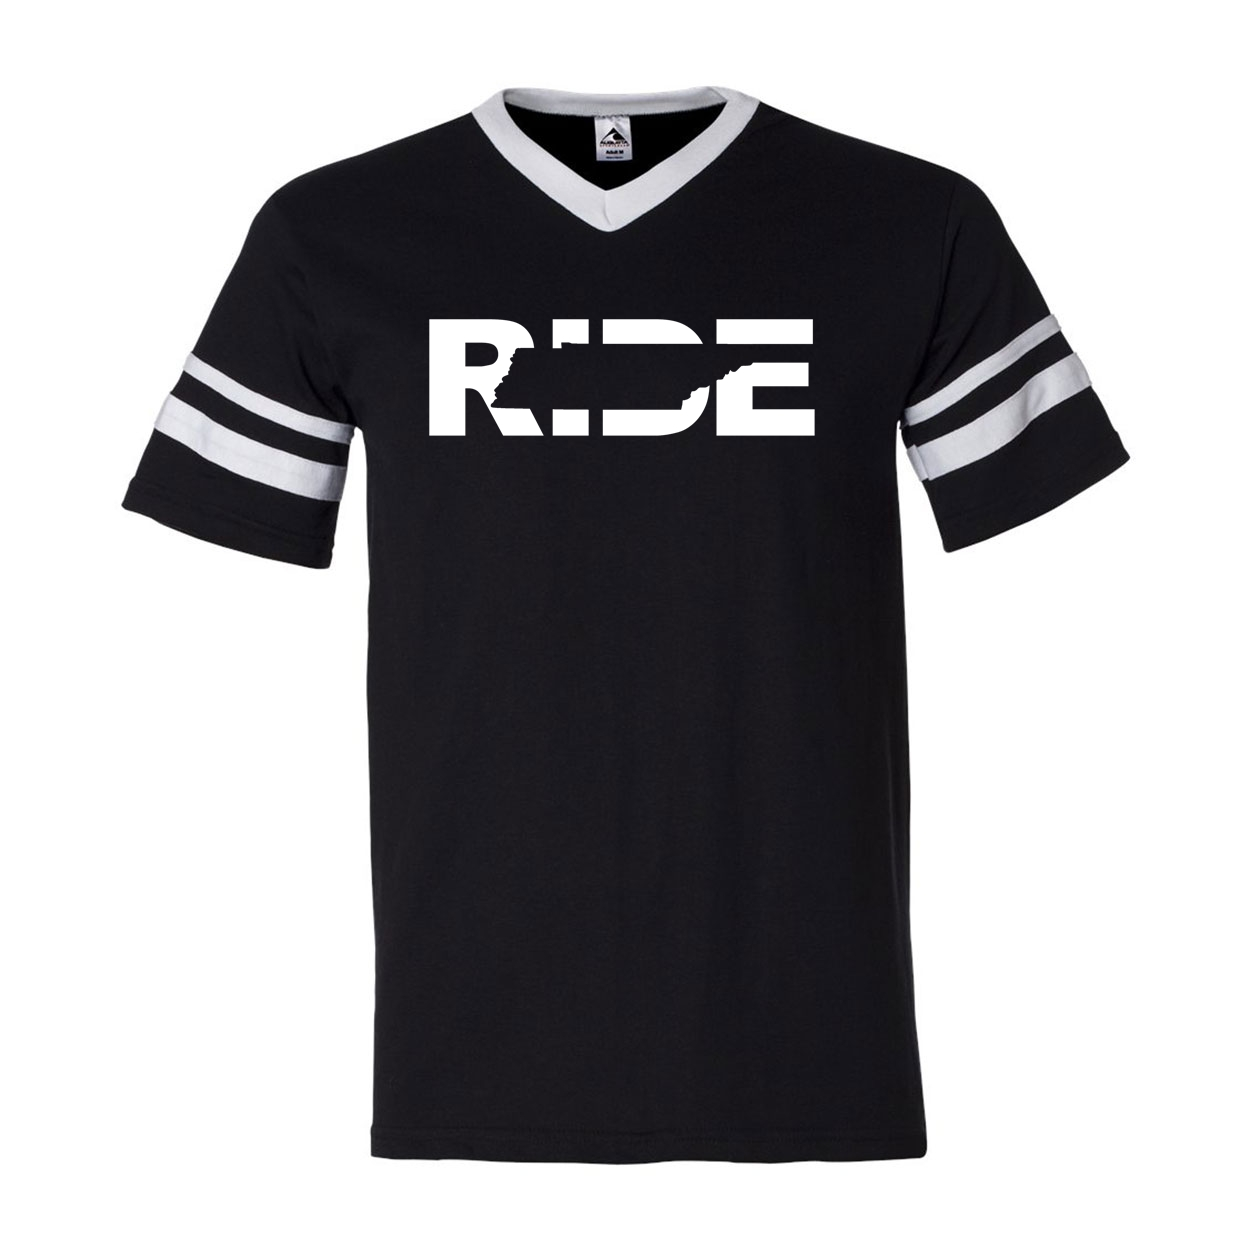 Ride Tennessee Classic Premium Striped Jersey T-Shirt Black/White (White Logo)